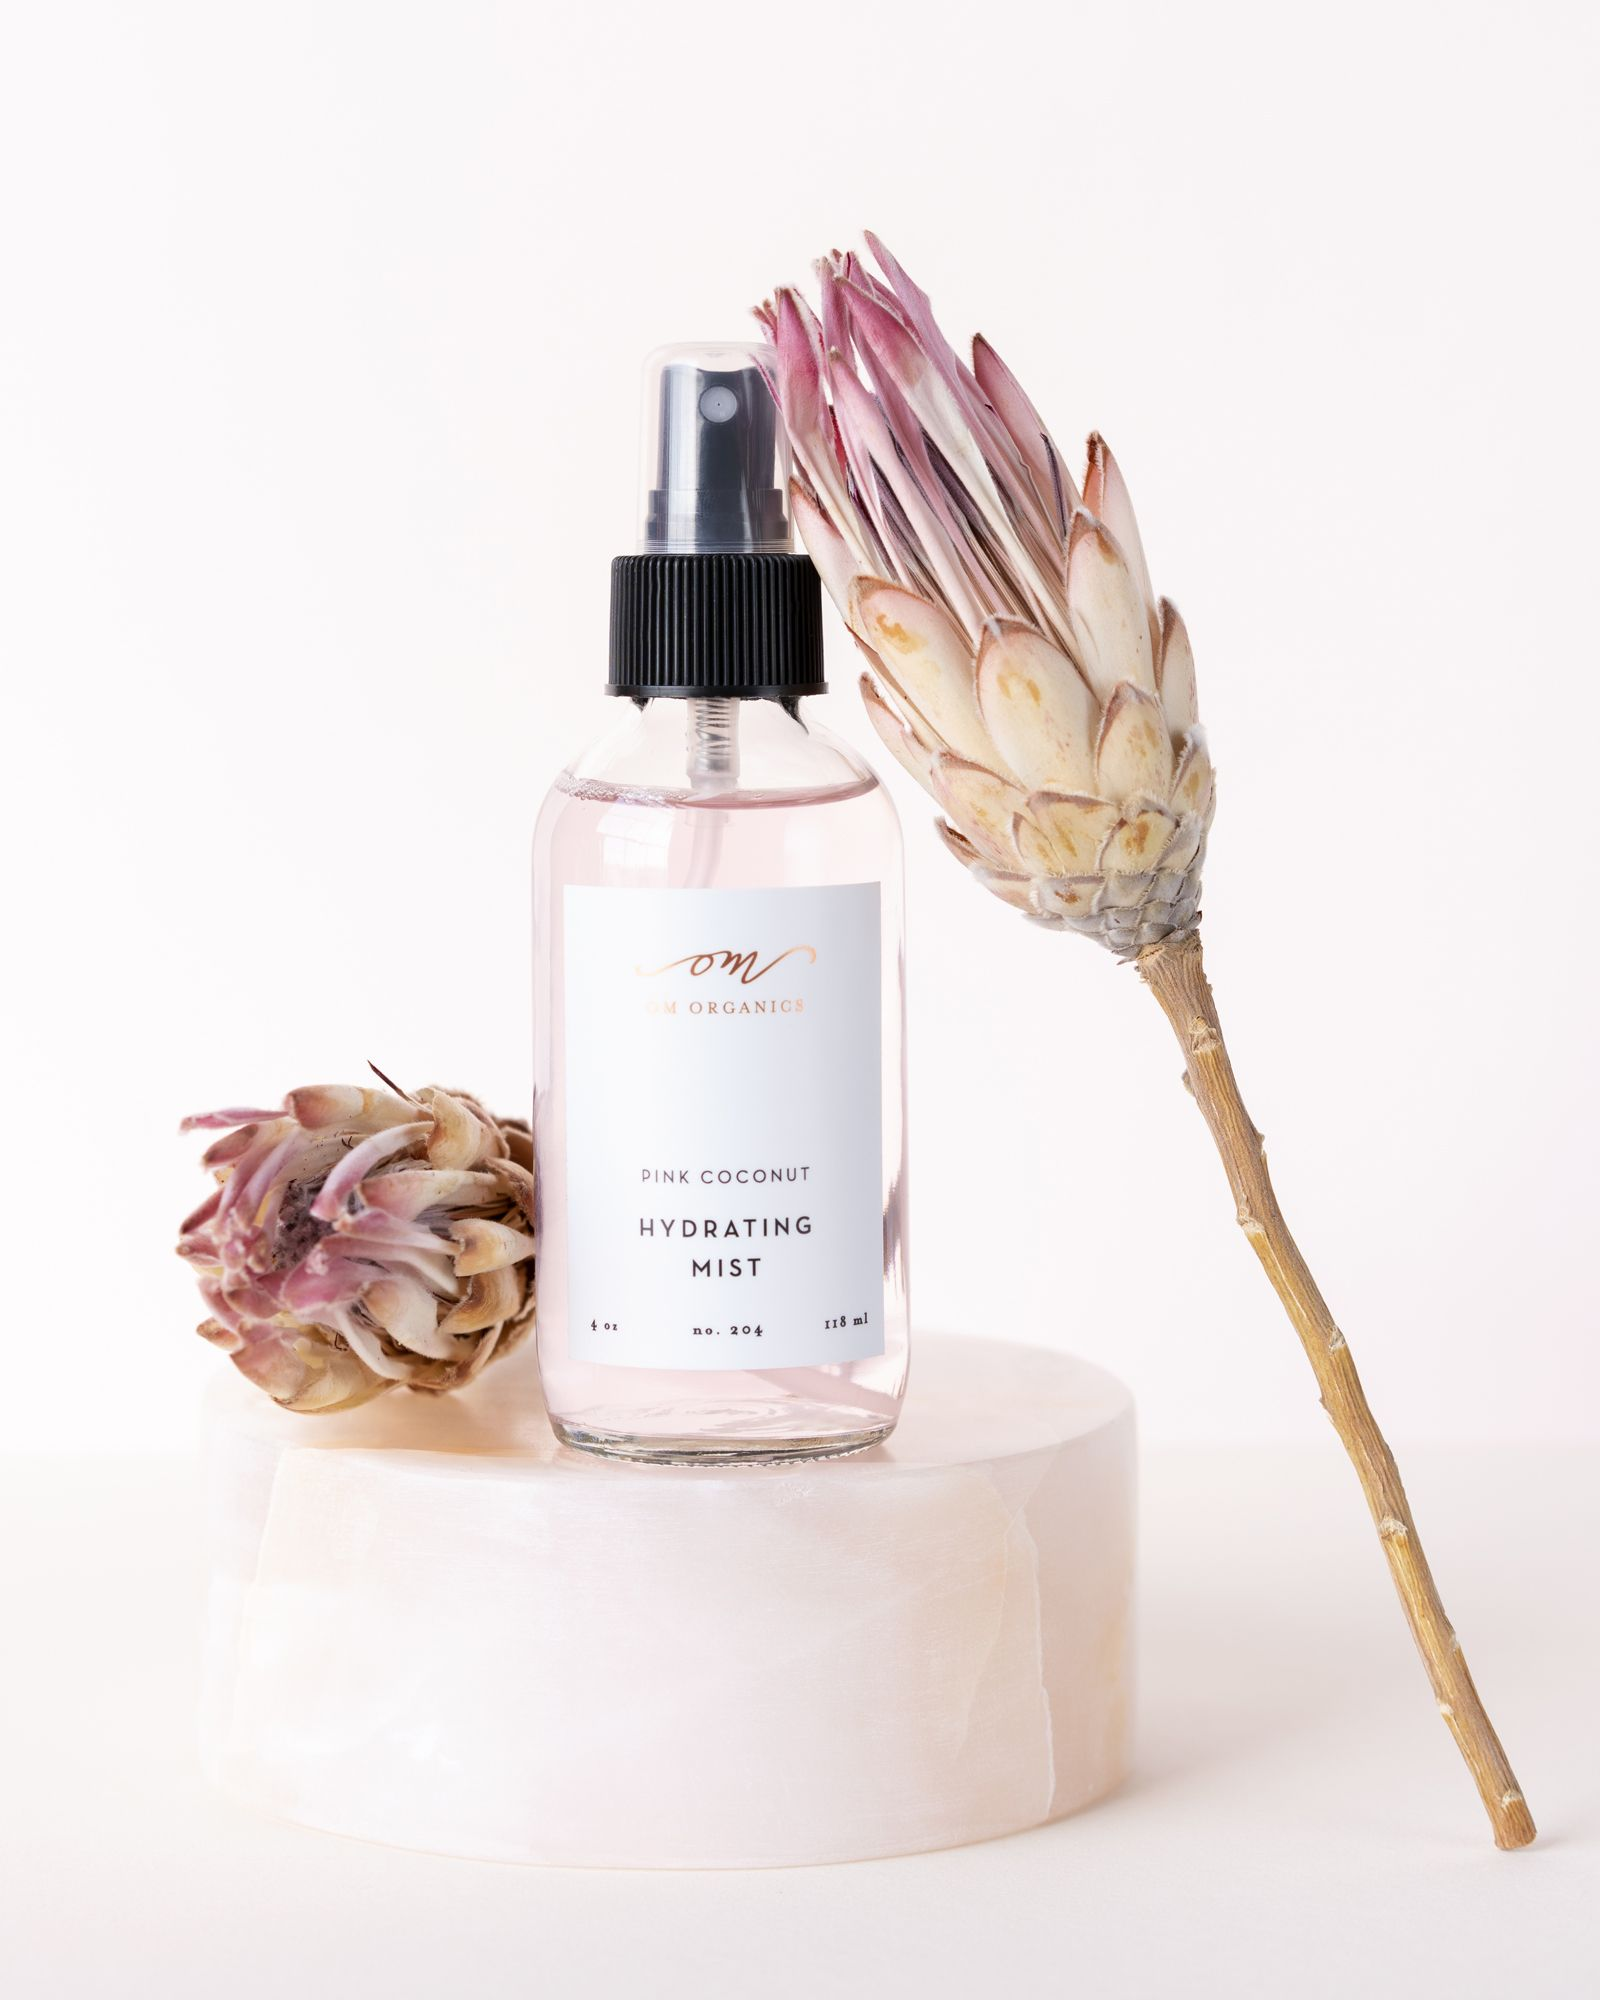 Om organics product photography in 2020 beauty